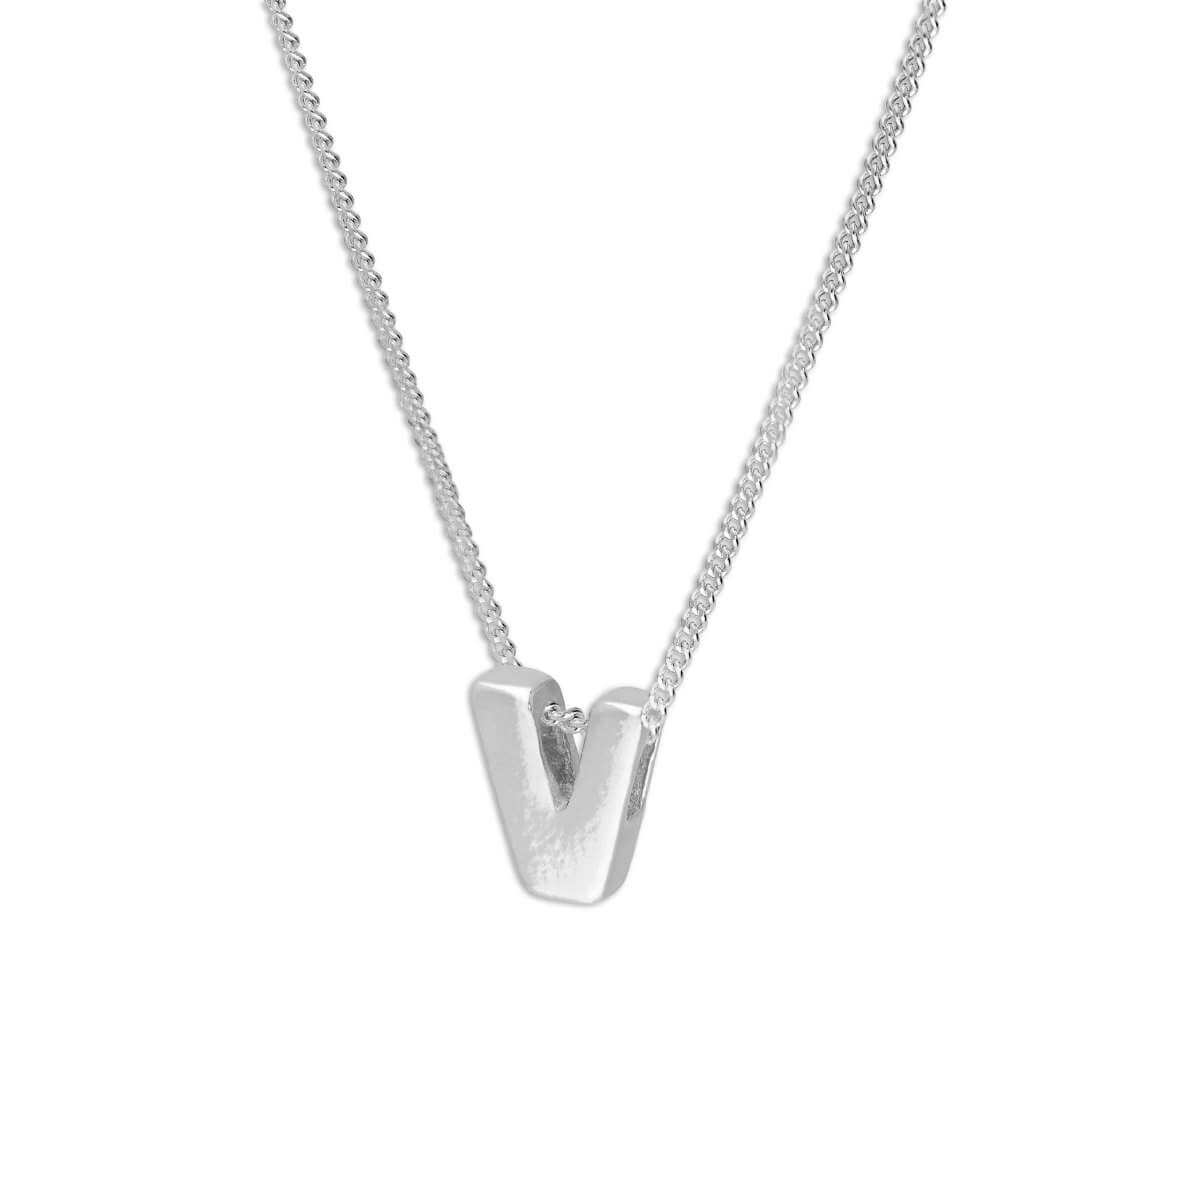 Sterling Silver Alphabet Letter Threader Bead 16+2 Inch Necklace V